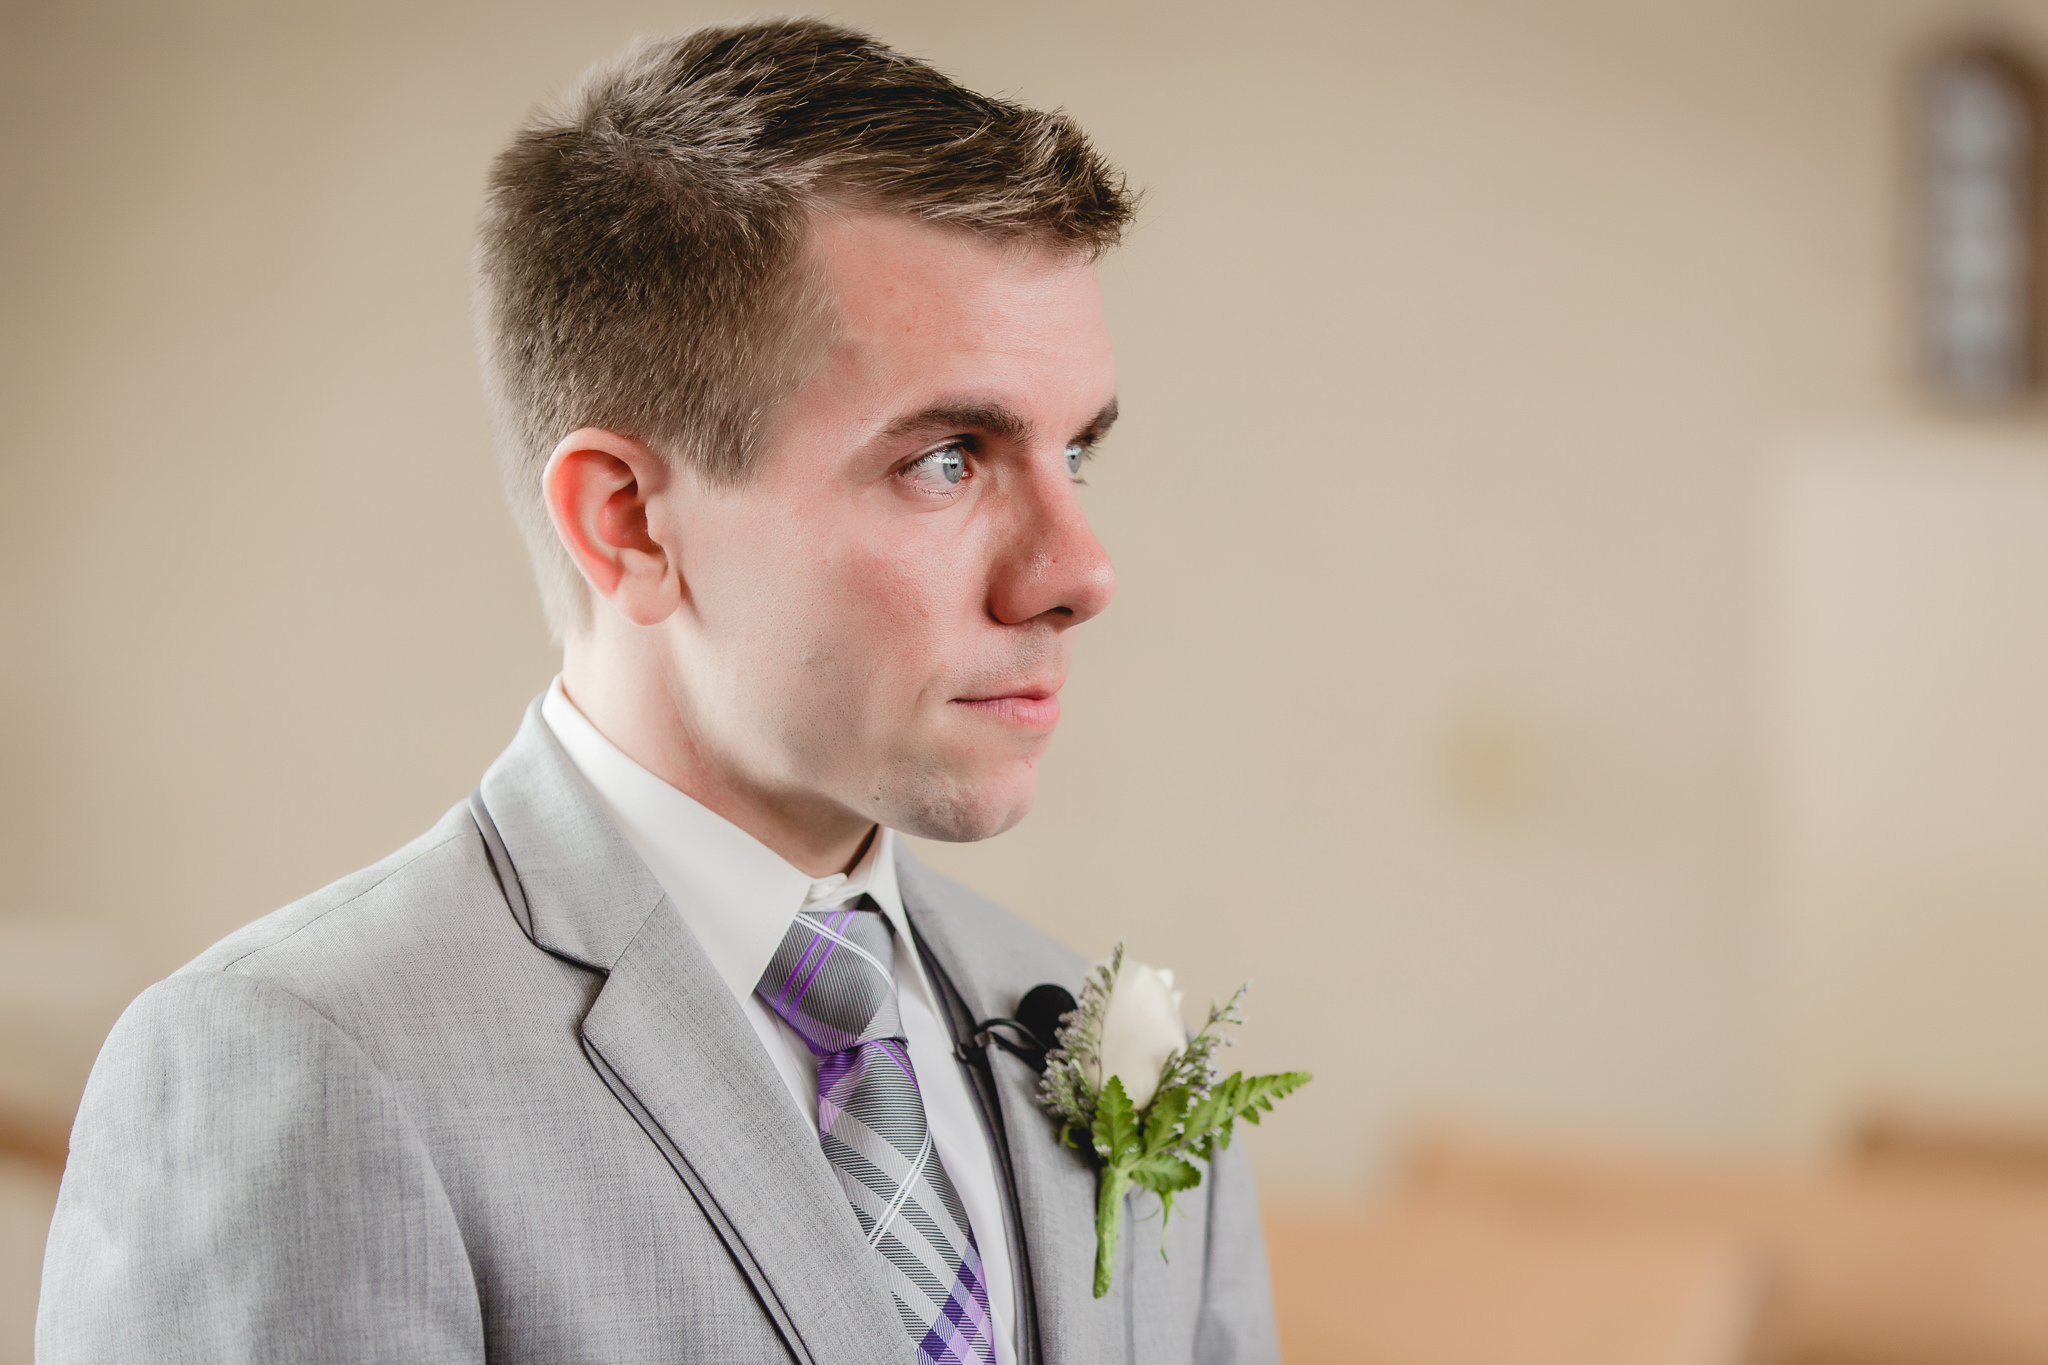 Groom tears up as he sees his bride for the first time